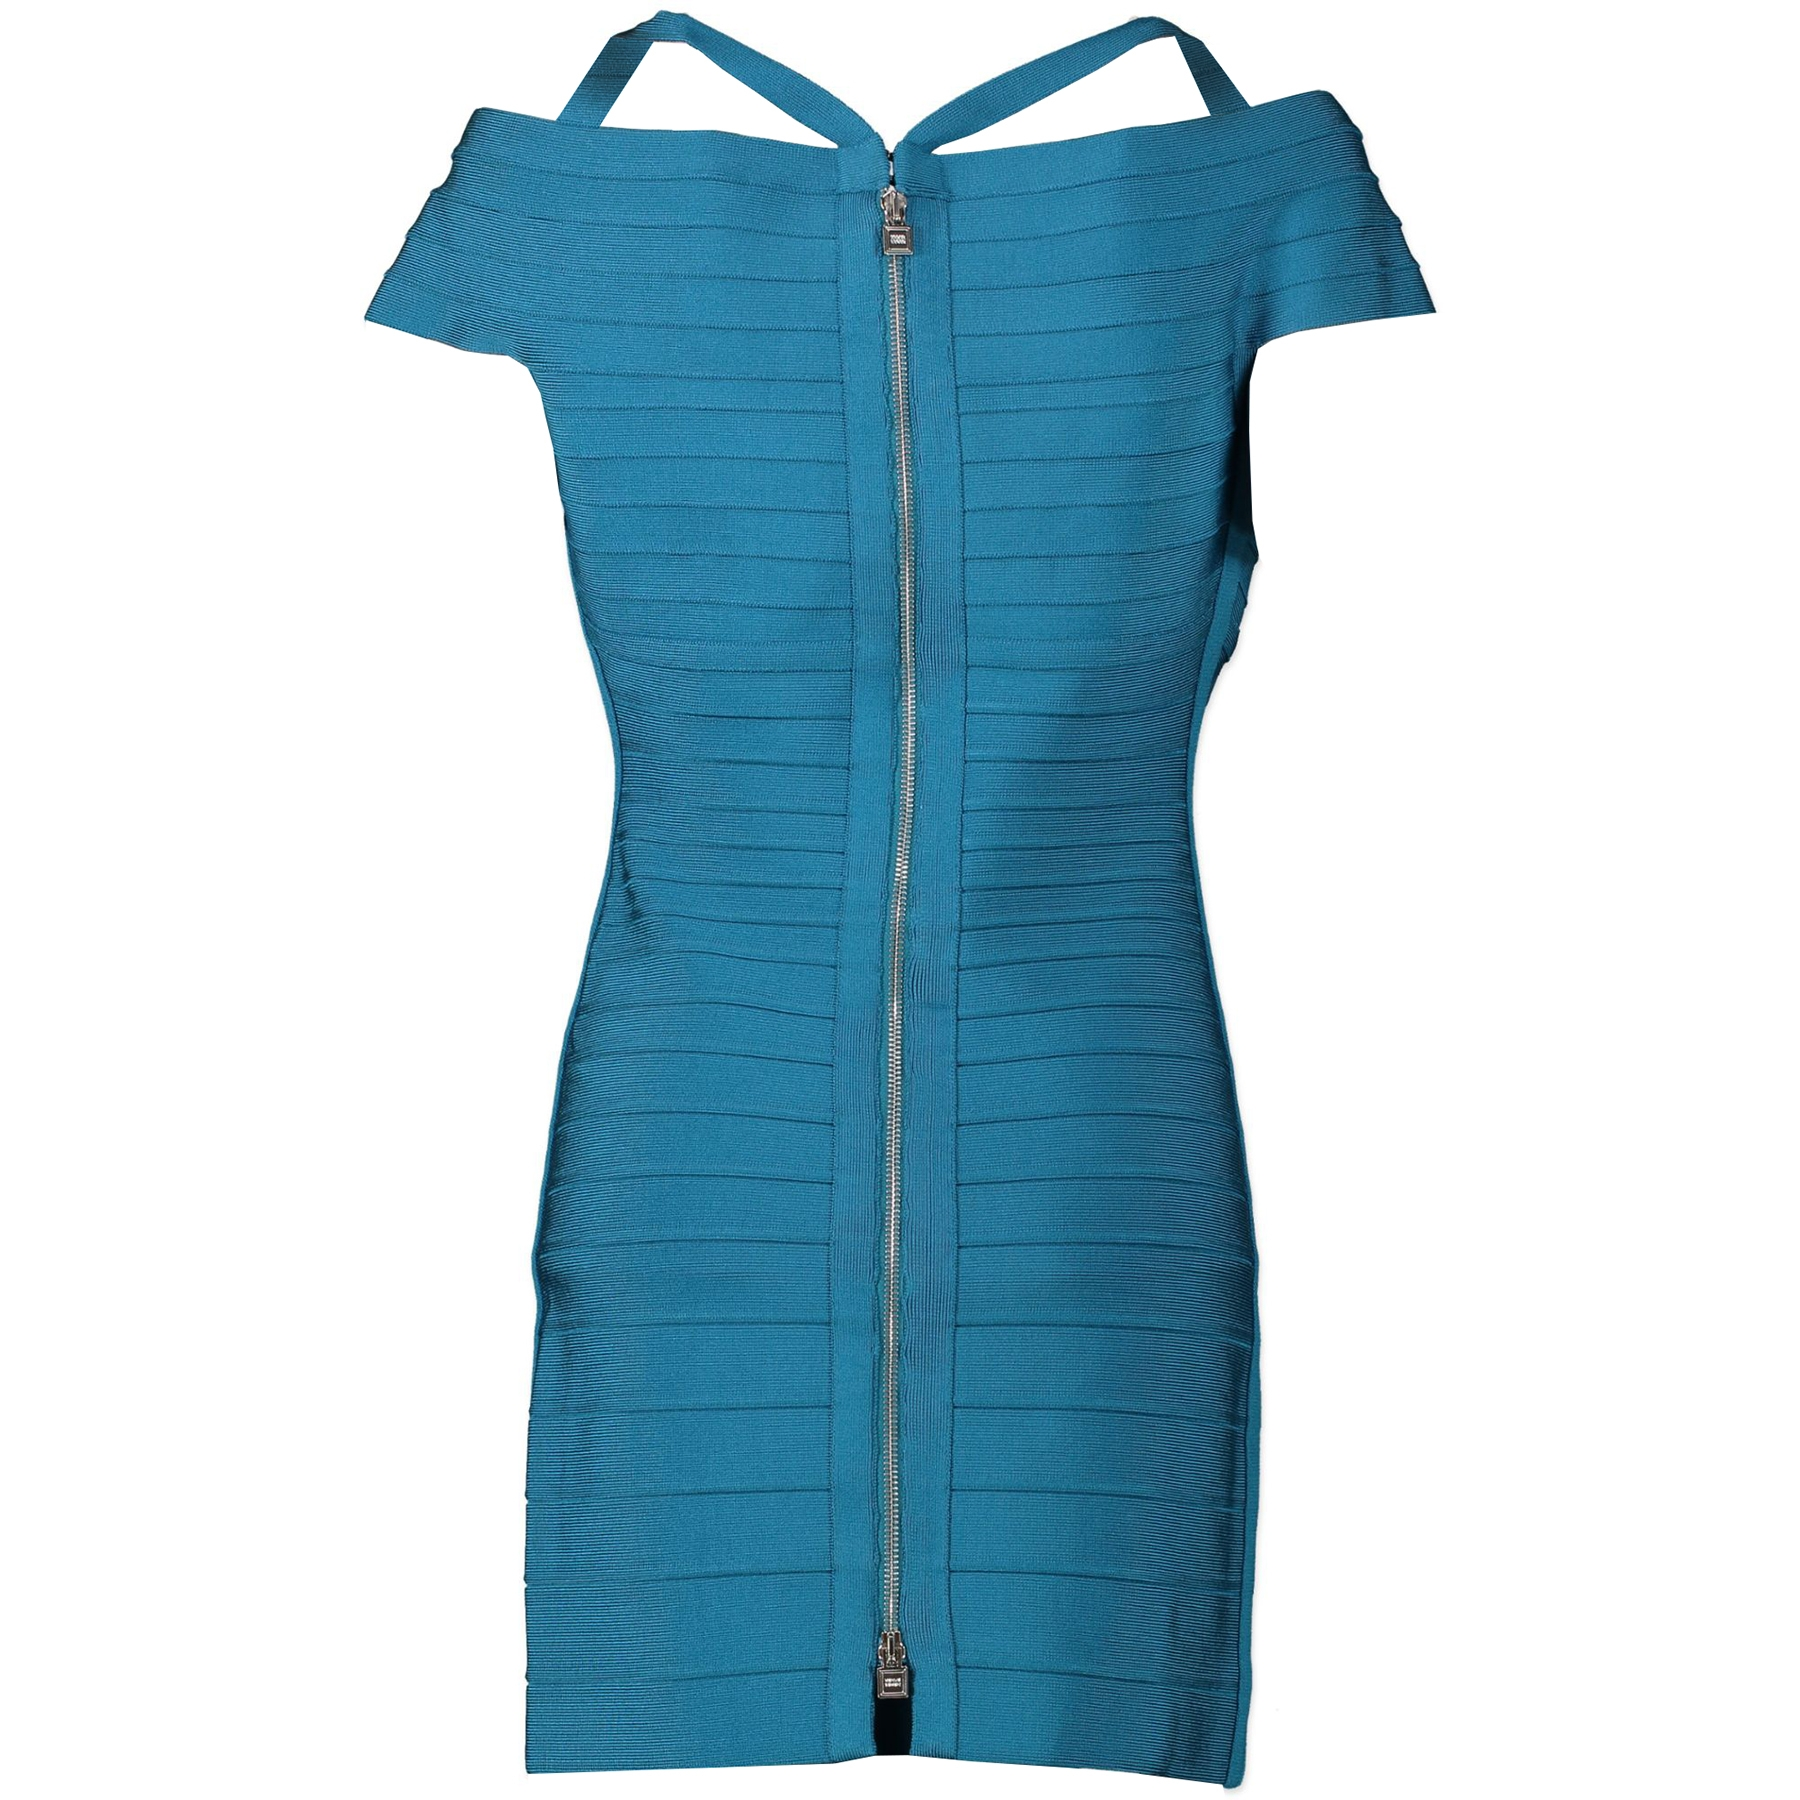 Herve Leger Turquoise Kelis Off-Shoulder Bandage Dress